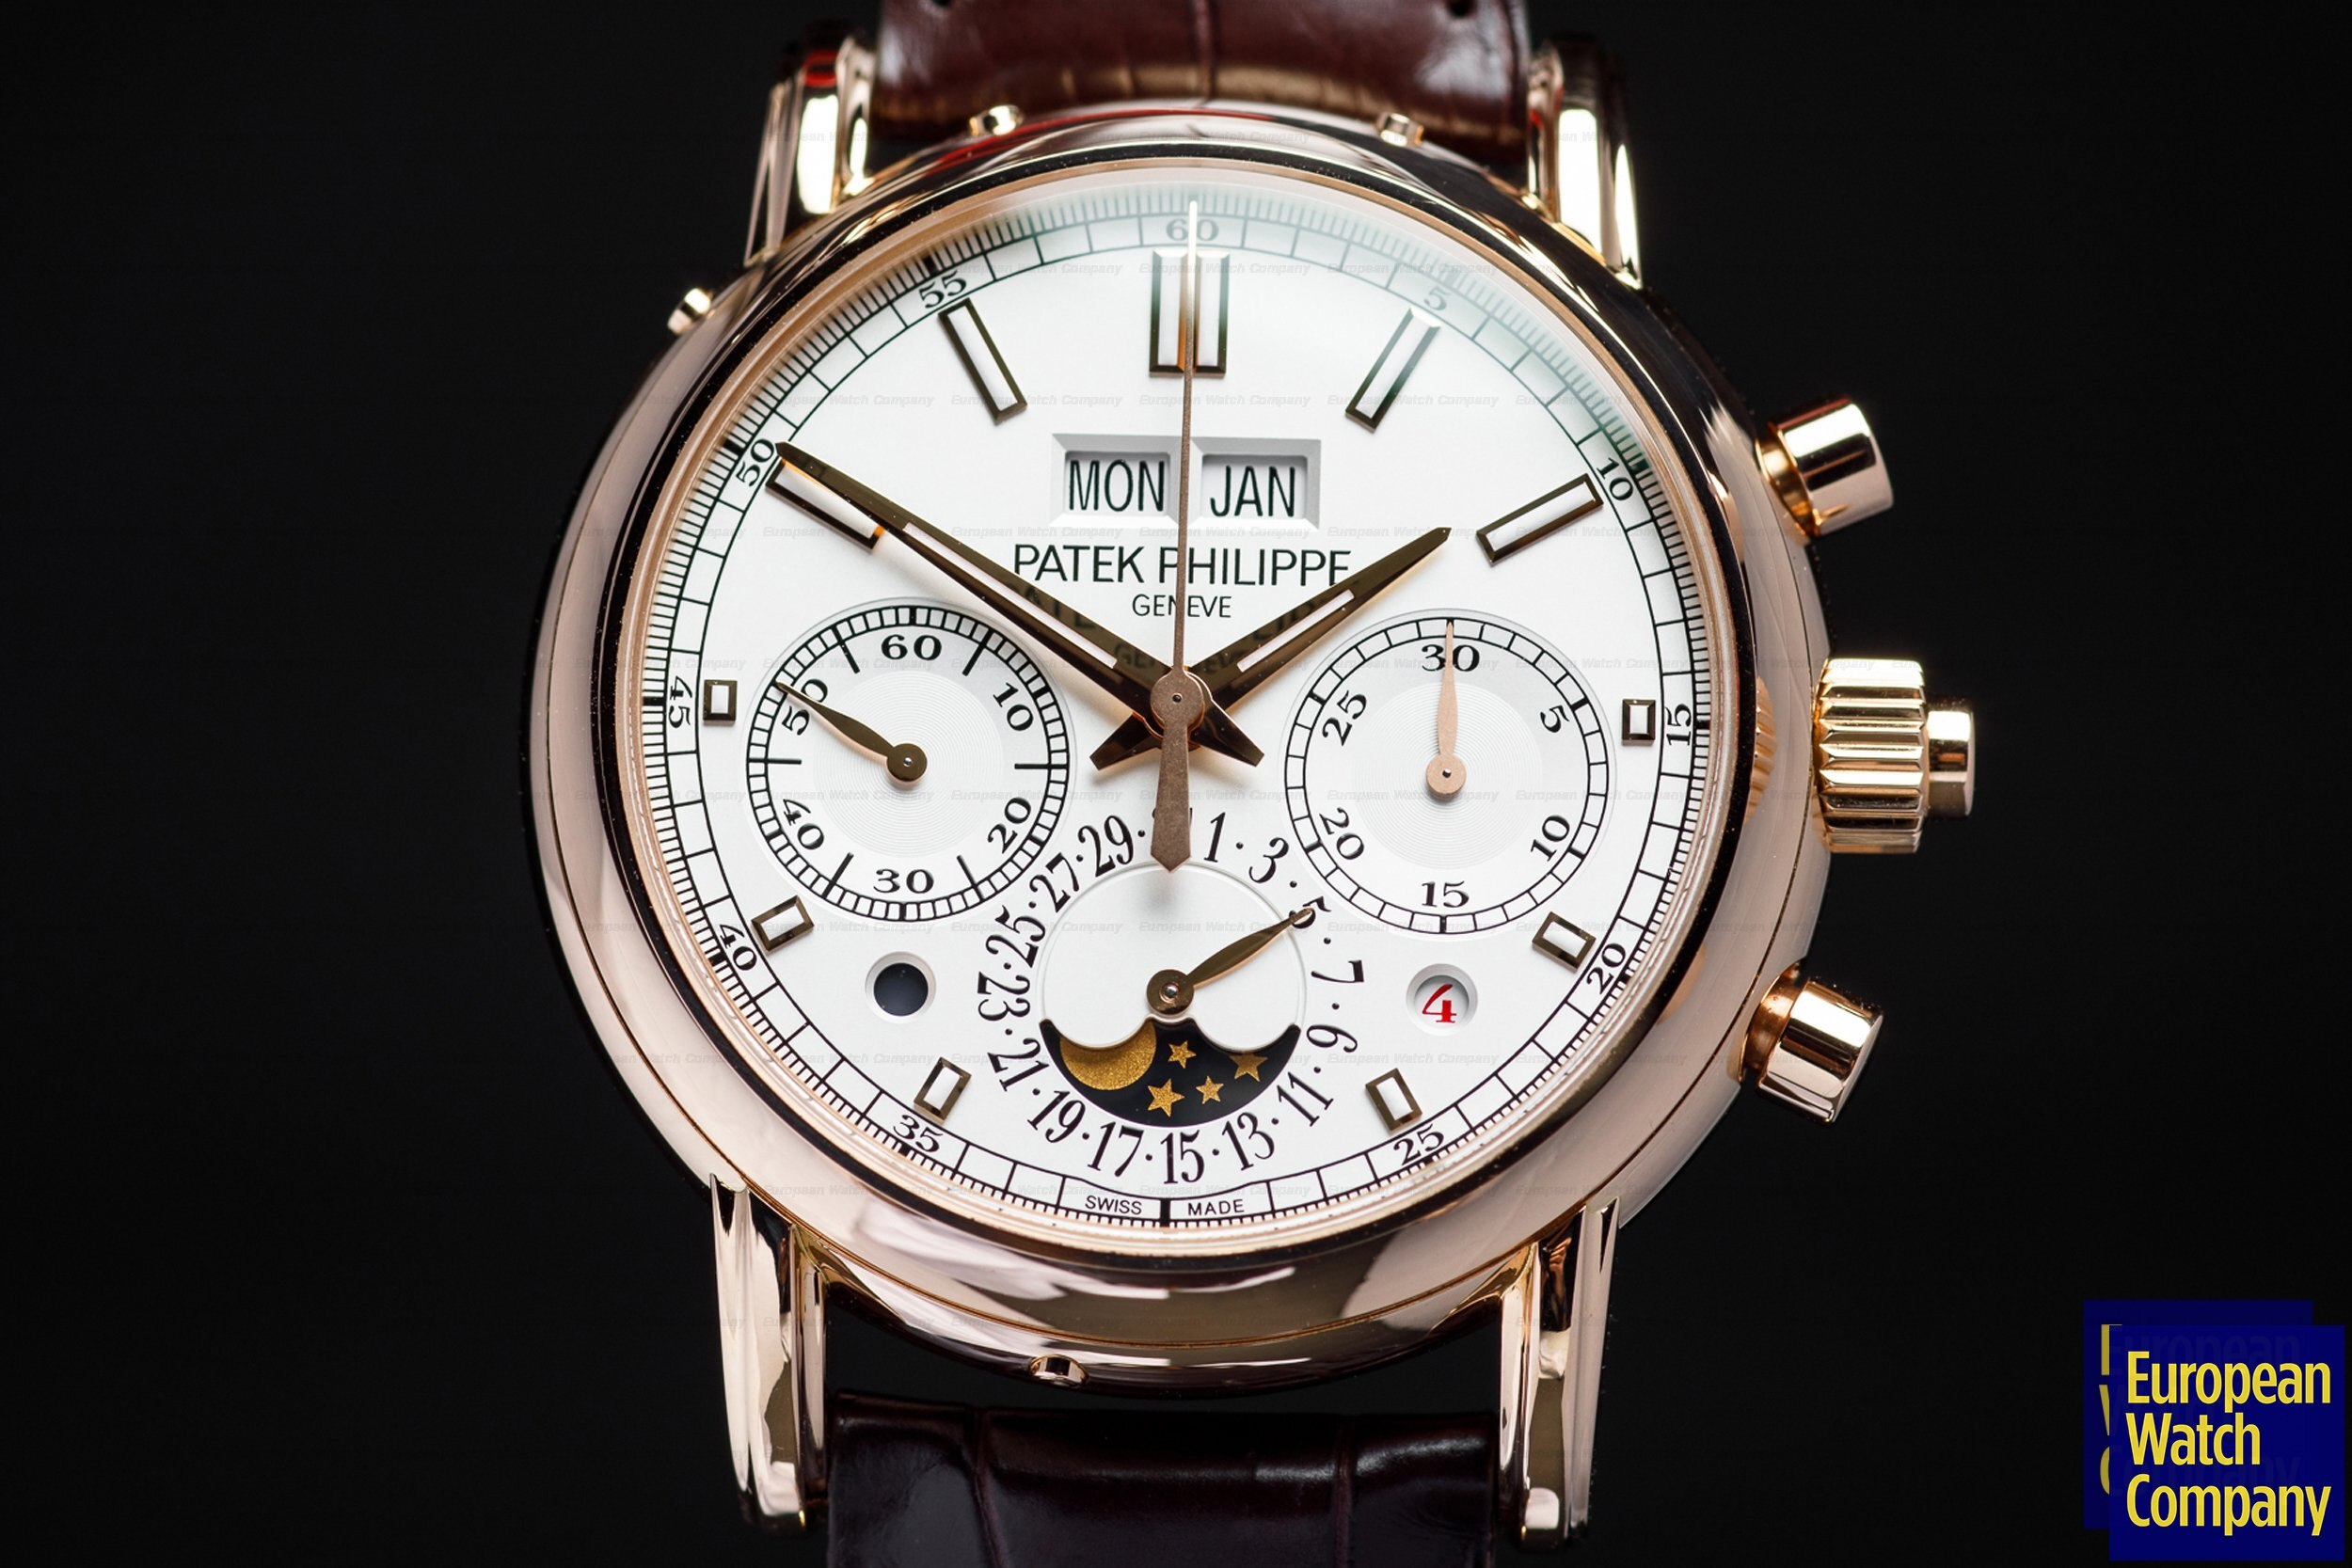 Patek Philippe 5204R-001 5204R Split Second Perpetual Calendar Chronograph 18k Rose Gold FULL SET